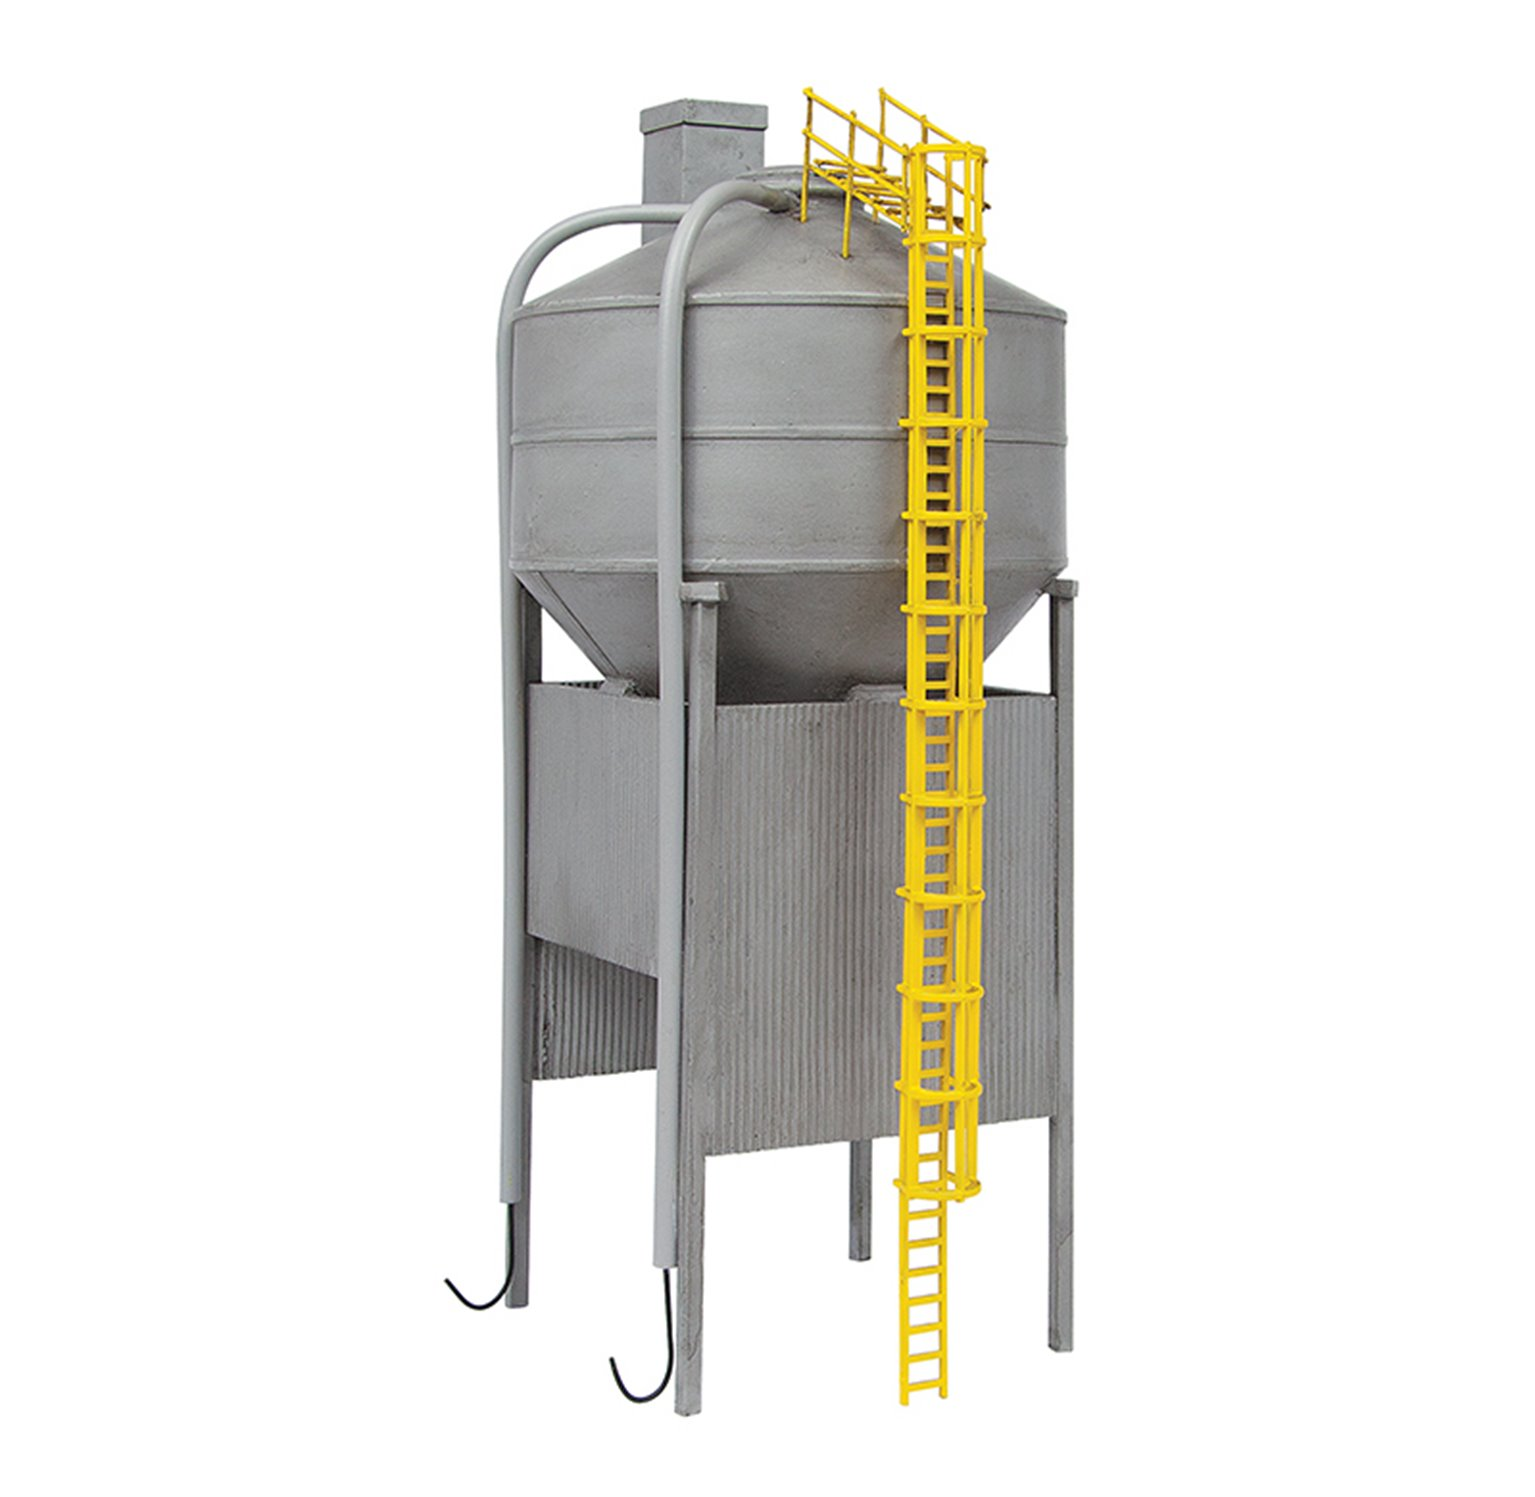 Presflo Loading Hopper